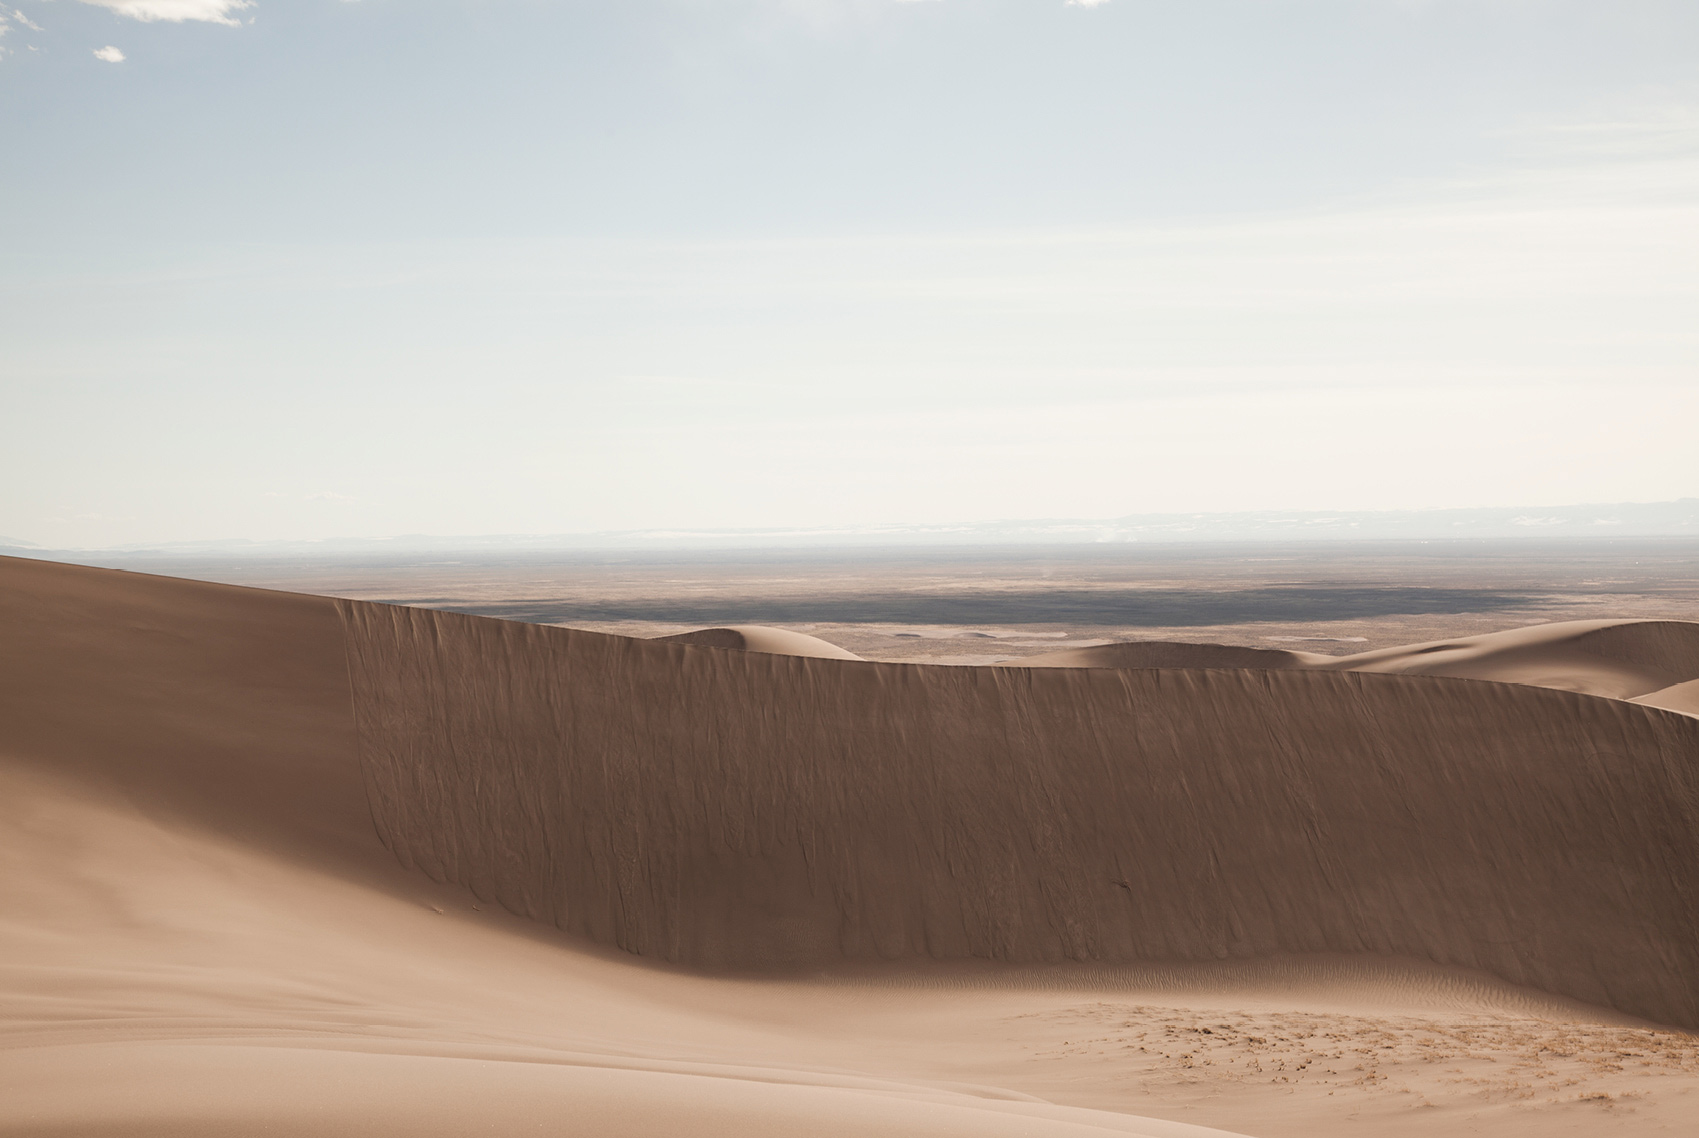 sam_kweskin_great_sand_dunes_colorado_4